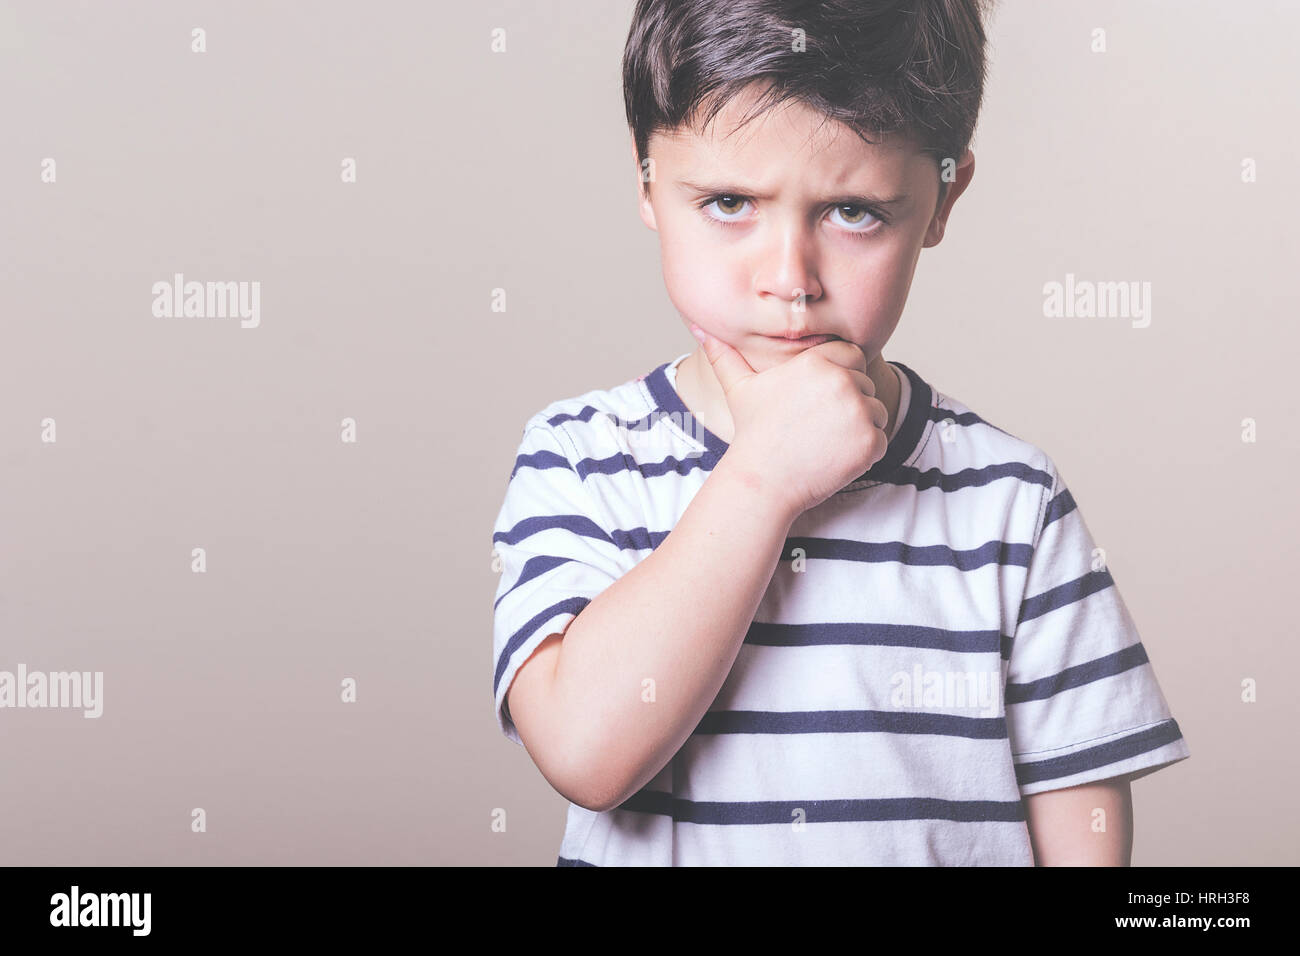 closeup of angry child - Stock Image